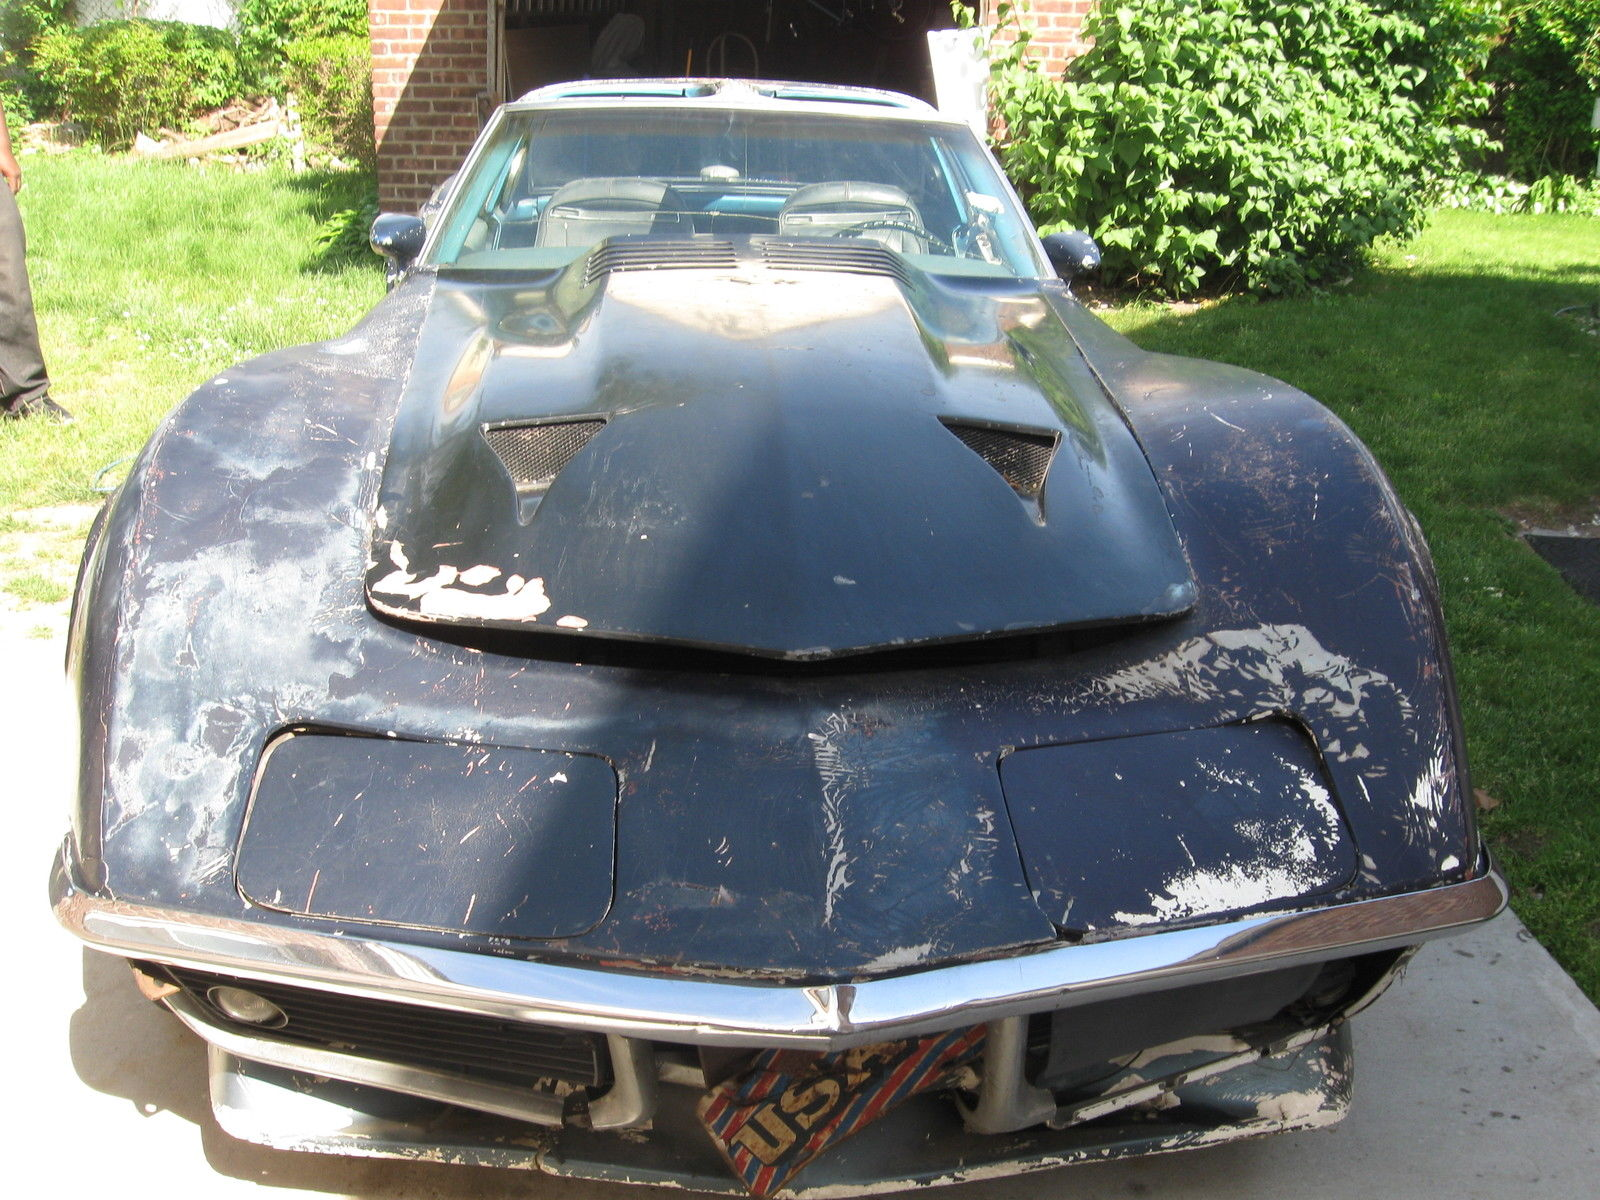 corvette project car for sale Chevrolet corvette classic cars for sale find new and used chevrolet corvette classics for sale by classic car dealers and private sellers near you change.